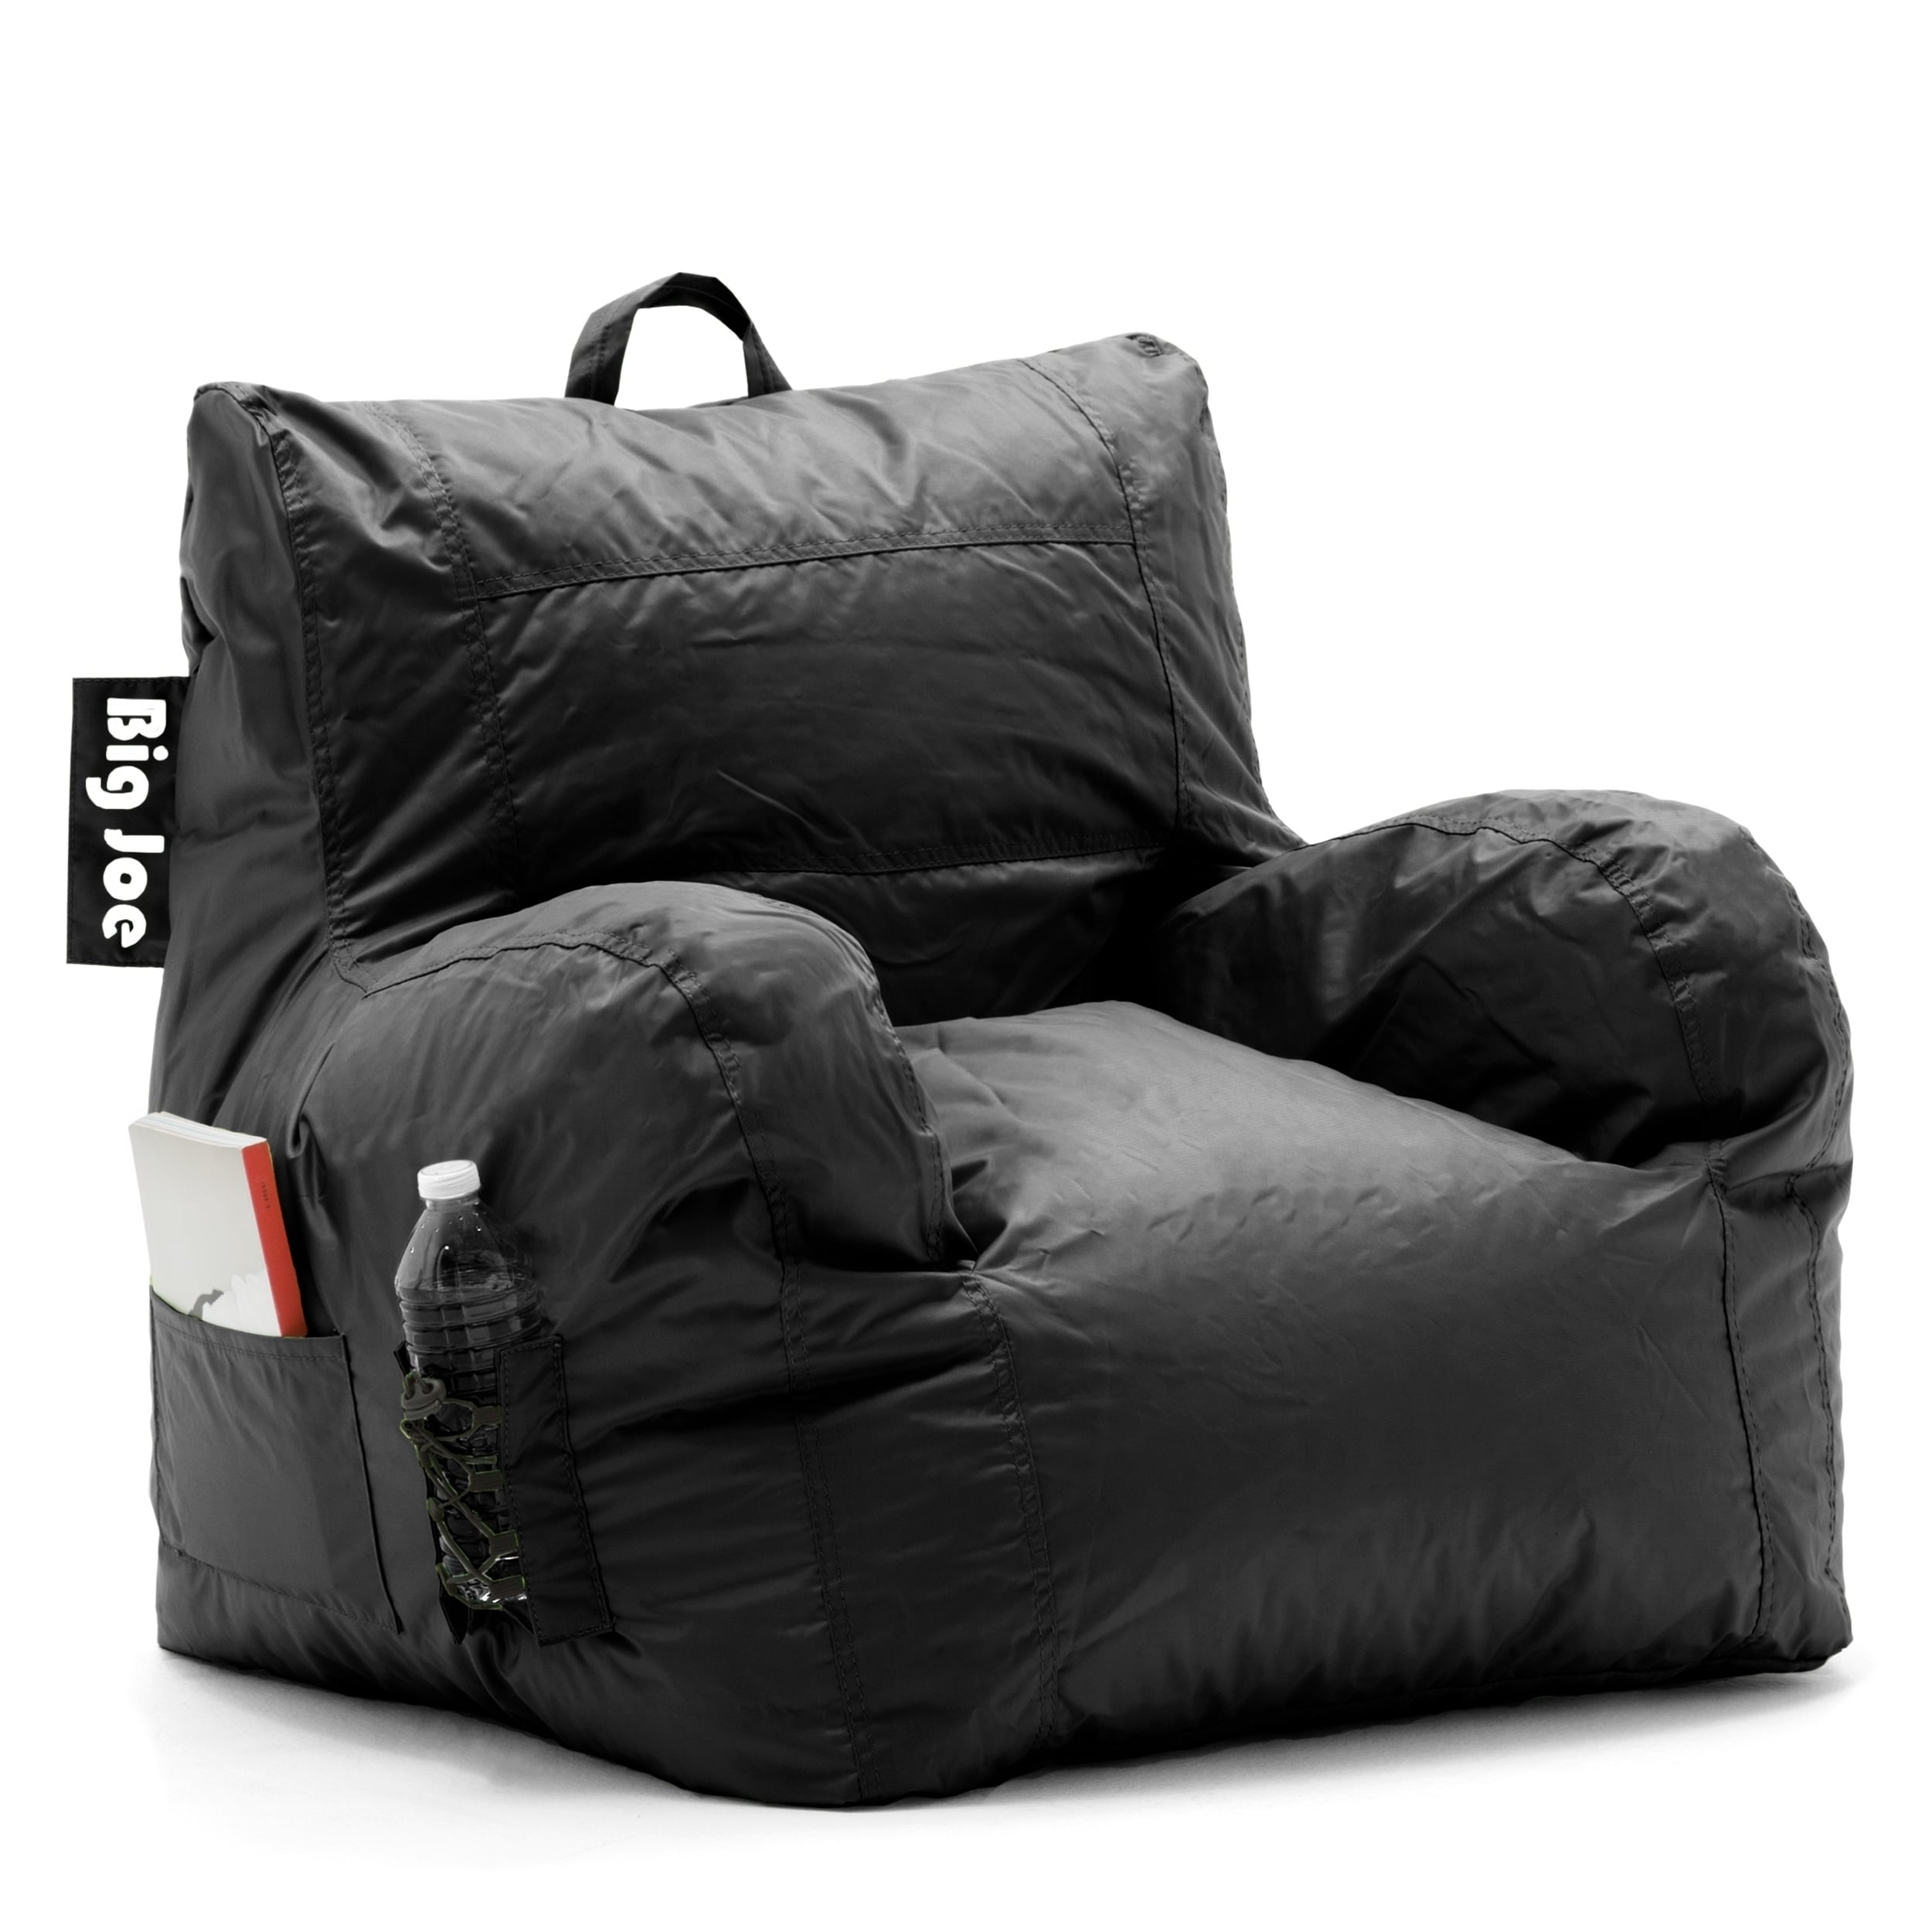 Delicieux Shop Big Joe Dorm Bean Bag Chair   Free Shipping Today   Overstock.com    18249680